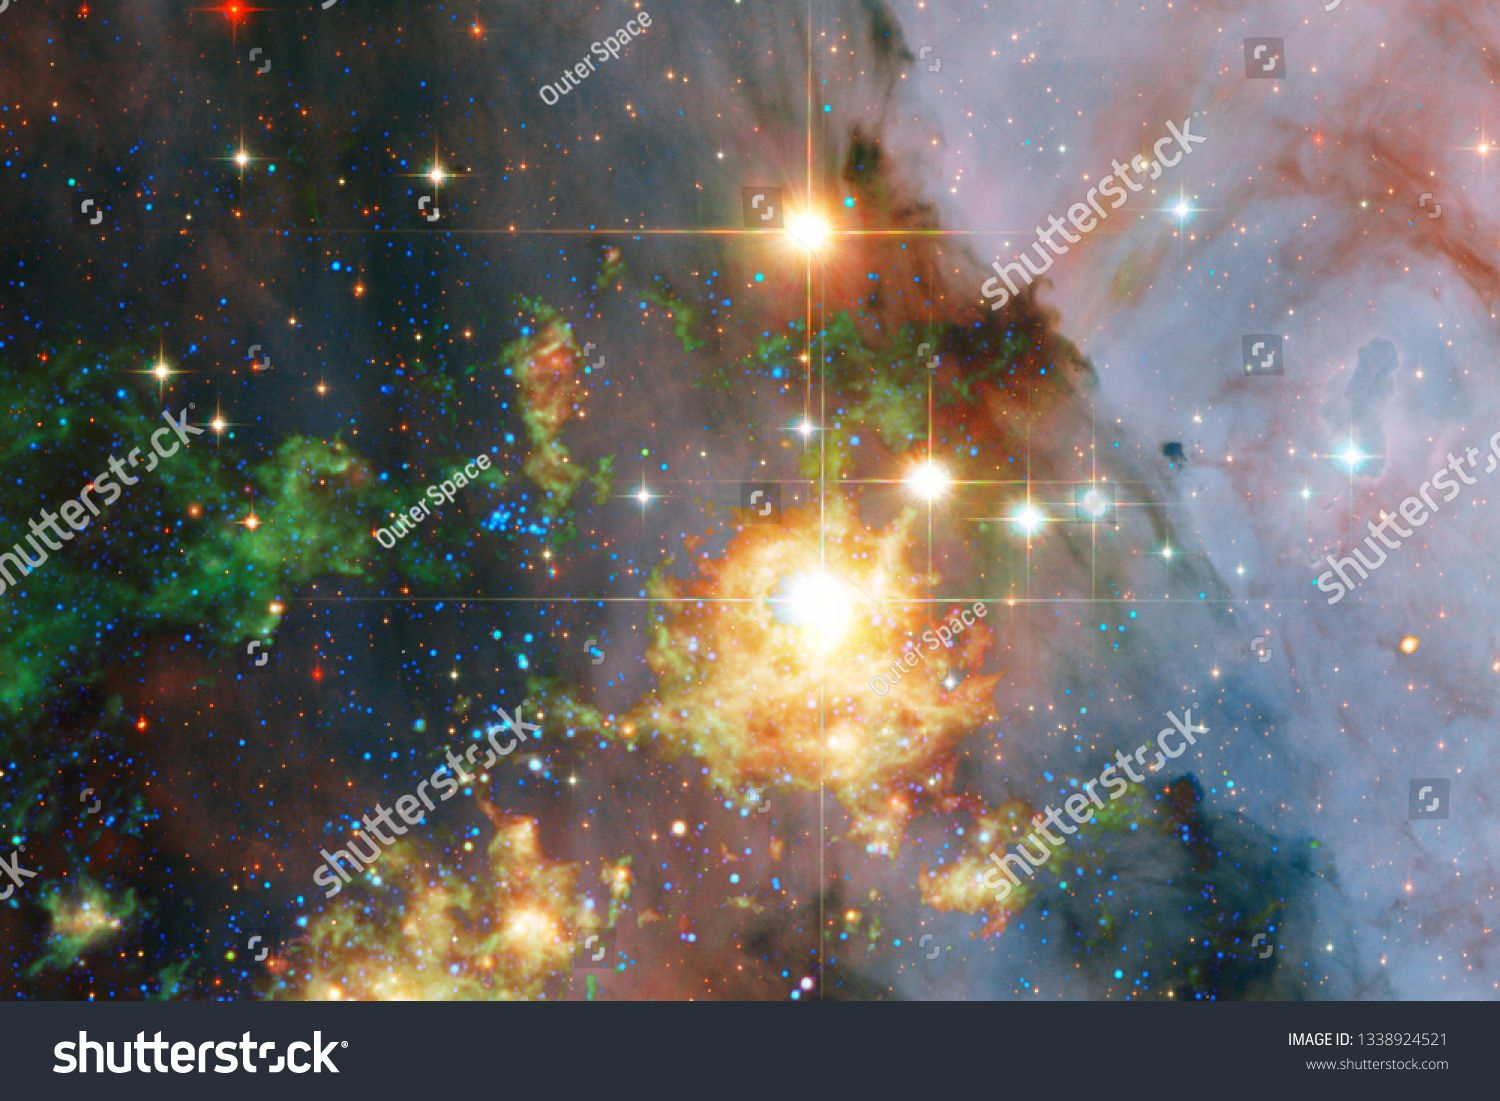 Beauty Deep Space Science Fiction Fantasy In High Resolution Ideal For Wallpaper Elements Of This Image Furnished In 2020 Deep Space Science Fiction Fantasy Fiction